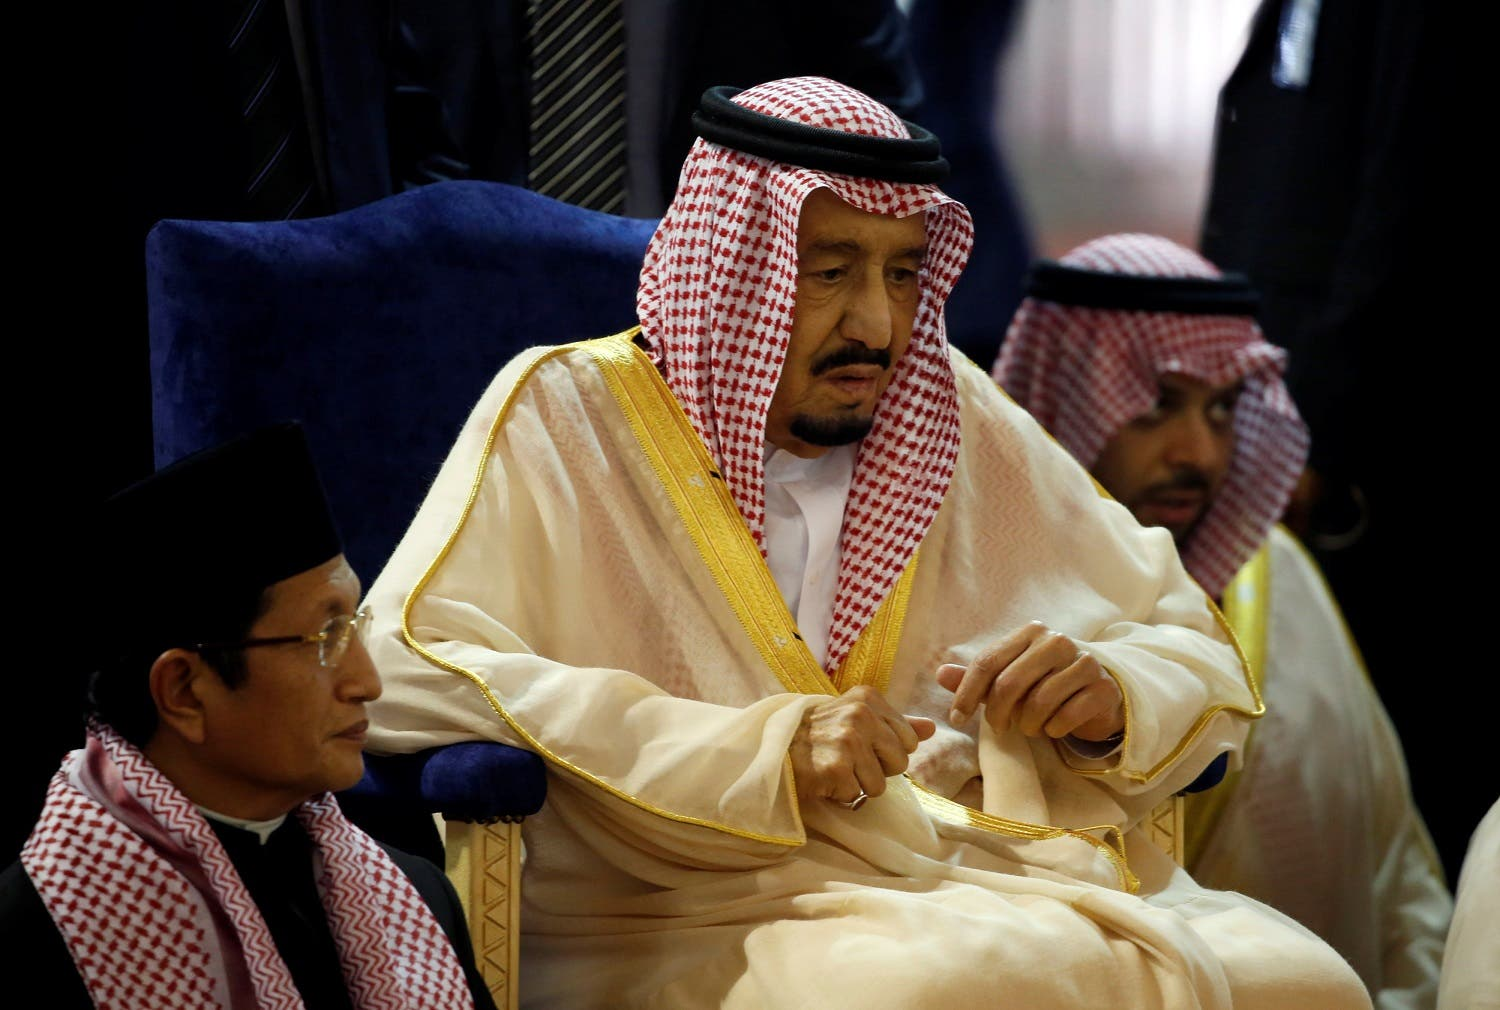 King Salman prays at the Istiqlal Mosque in Jakarta, Indonesia March 2, 2017. (Reuters)